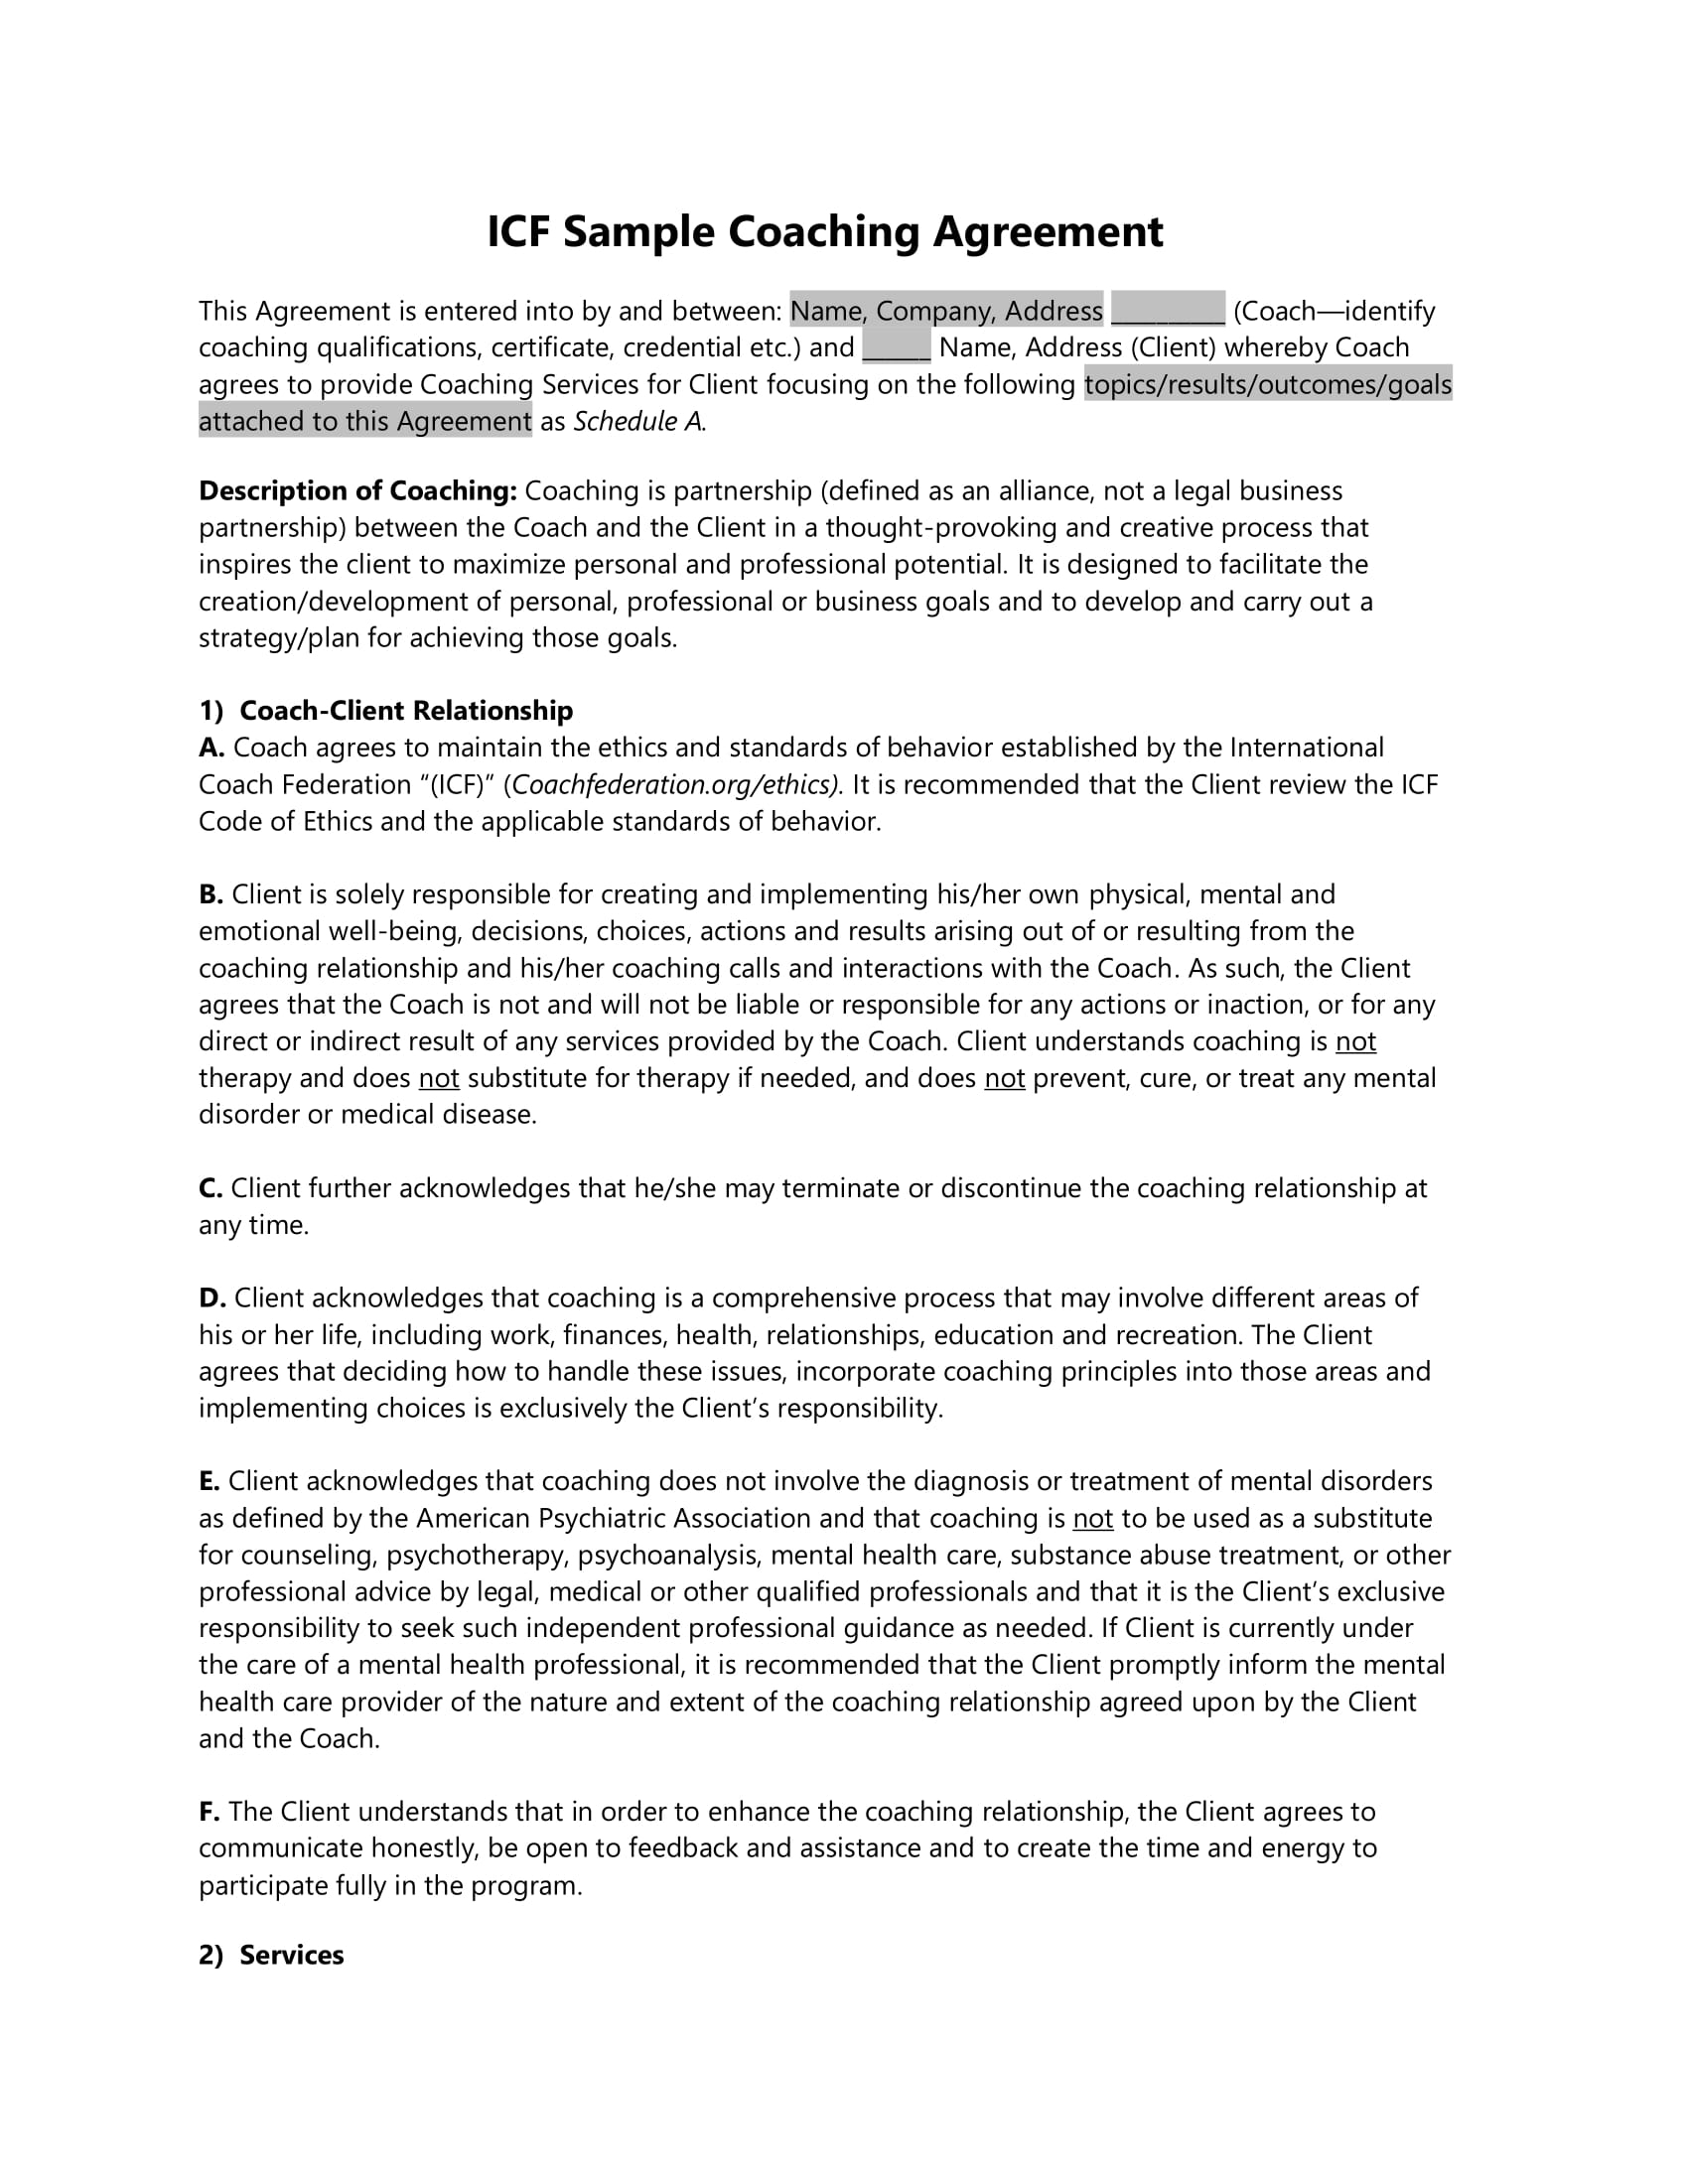 11 sports coach contract examples pdf icf sample coaching agreement example accmission